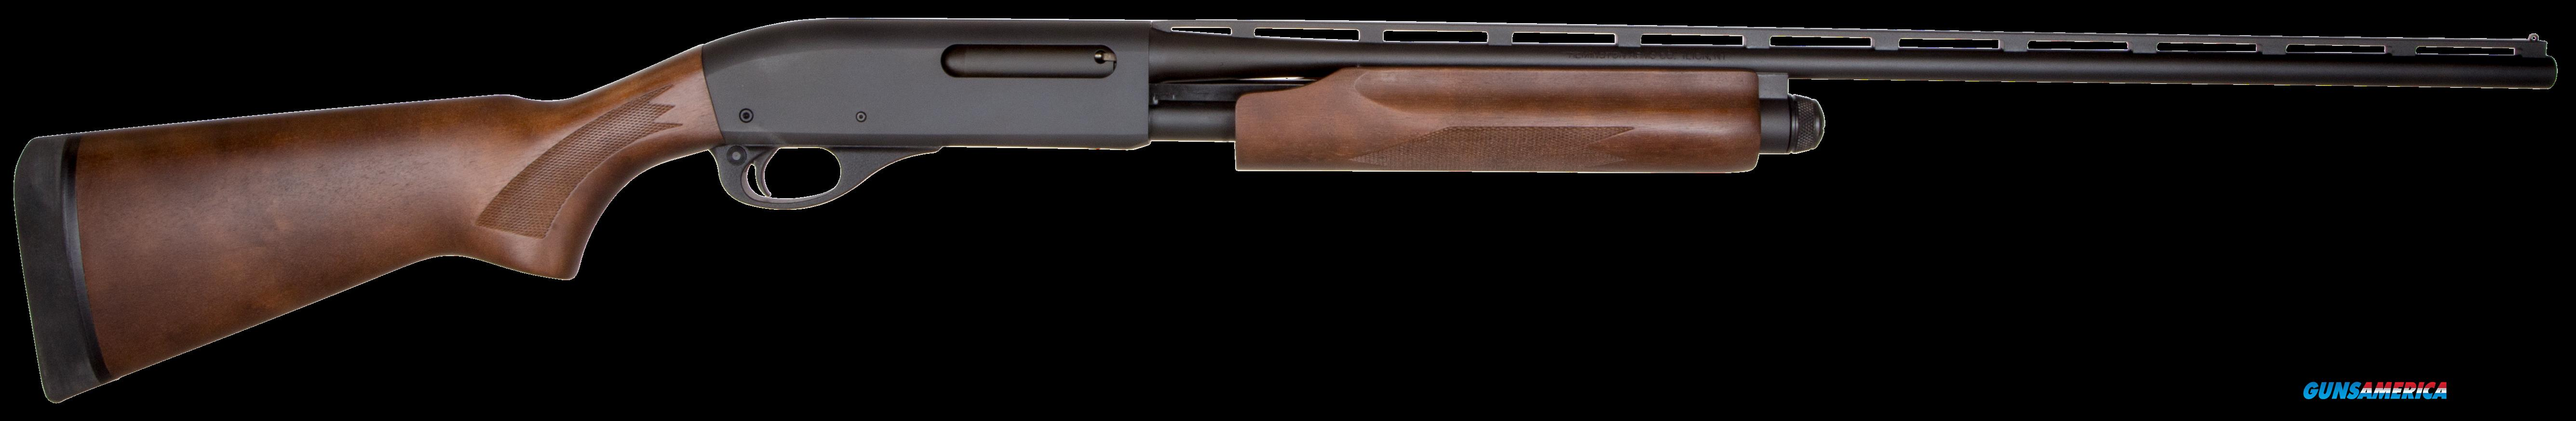 "Remington Firearms 25078 870 Express Youth Pump 410 Gauge 25"" 3"" Birch Stk Black  Guns > Shotguns > R Misc Shotguns"